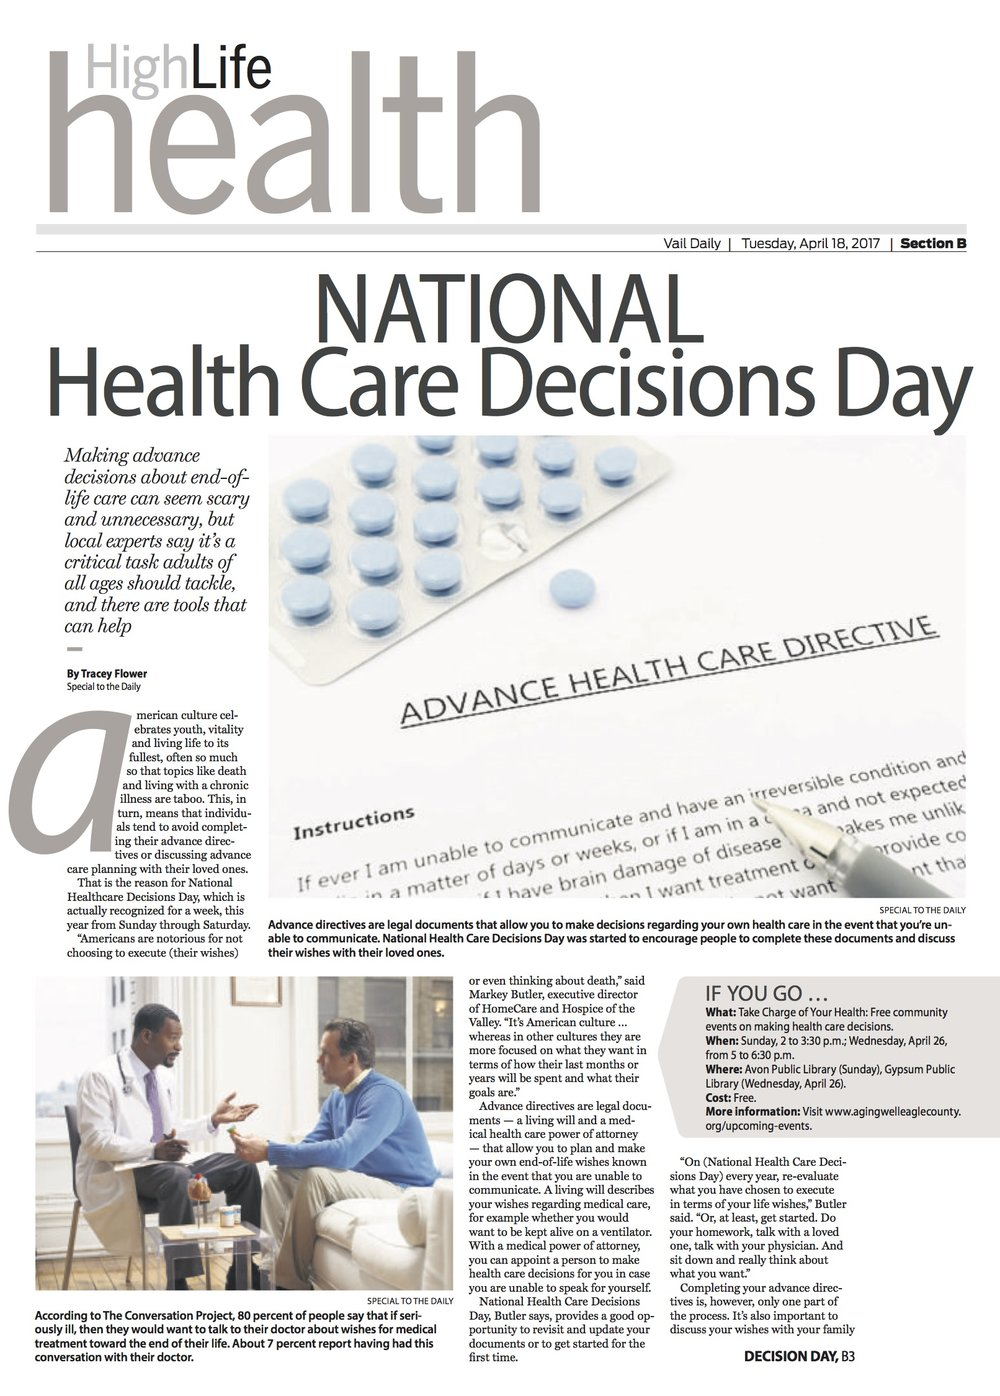 National Health Care Decisions Day   // Vail Daily // April 18, 2017